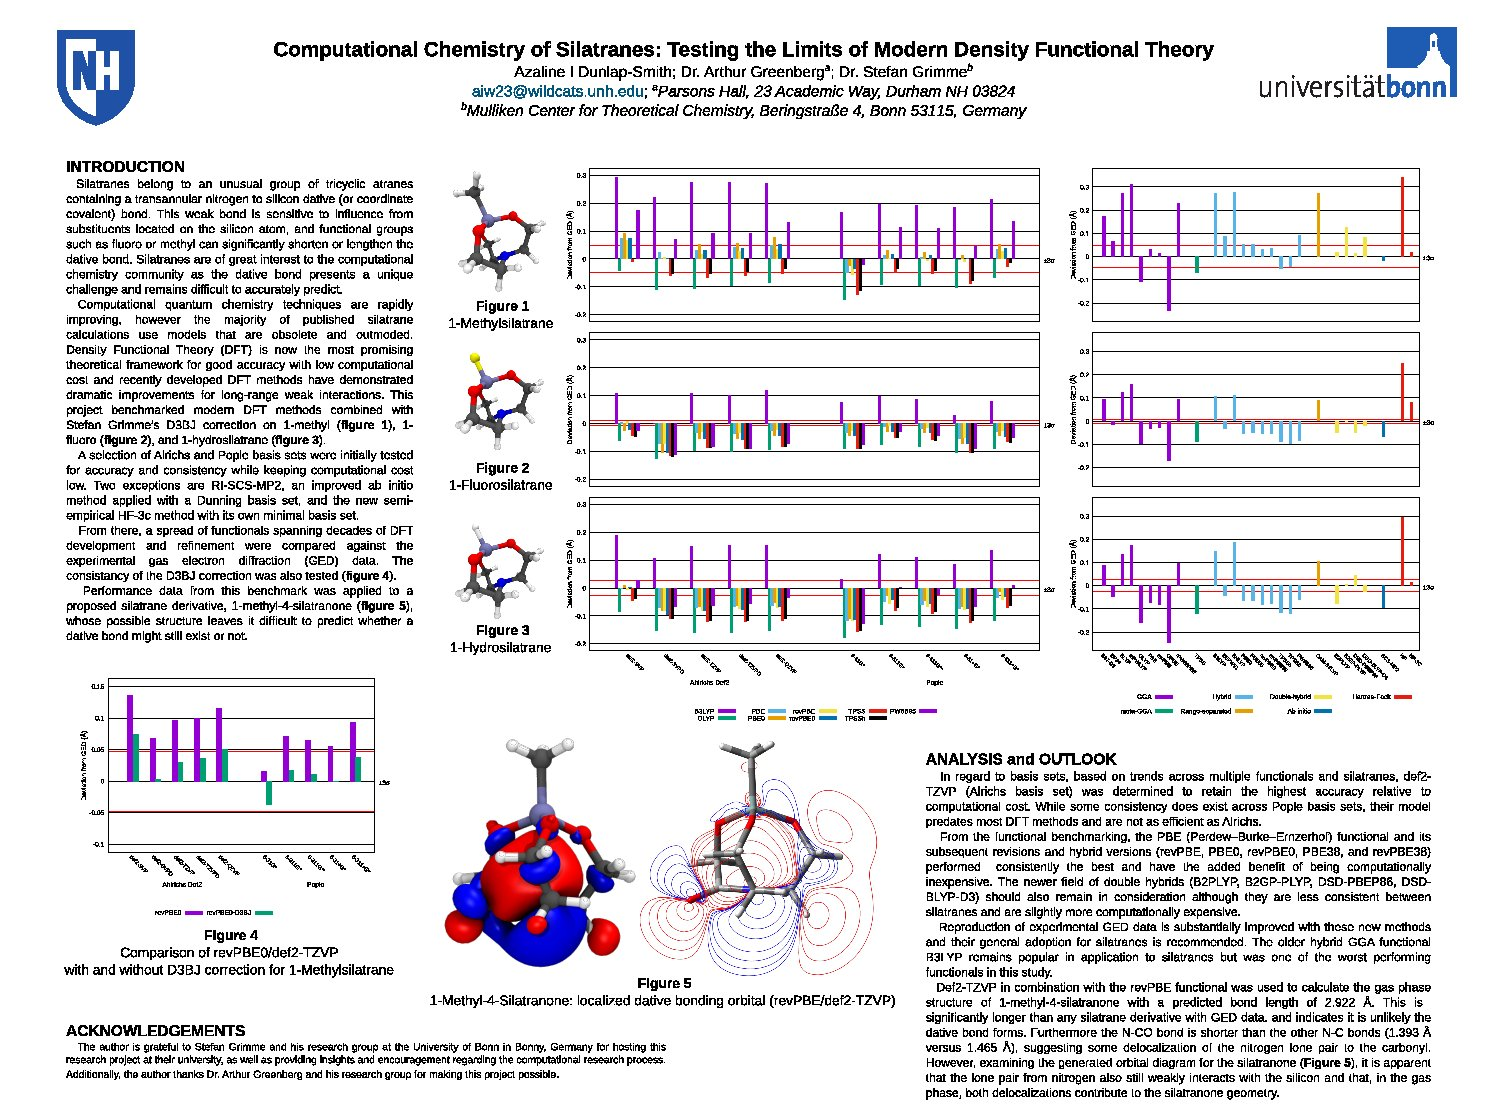 Computational Chemistry Of Silatranes: Testing The Limits Of Modern Density Functional Theory by aiw23